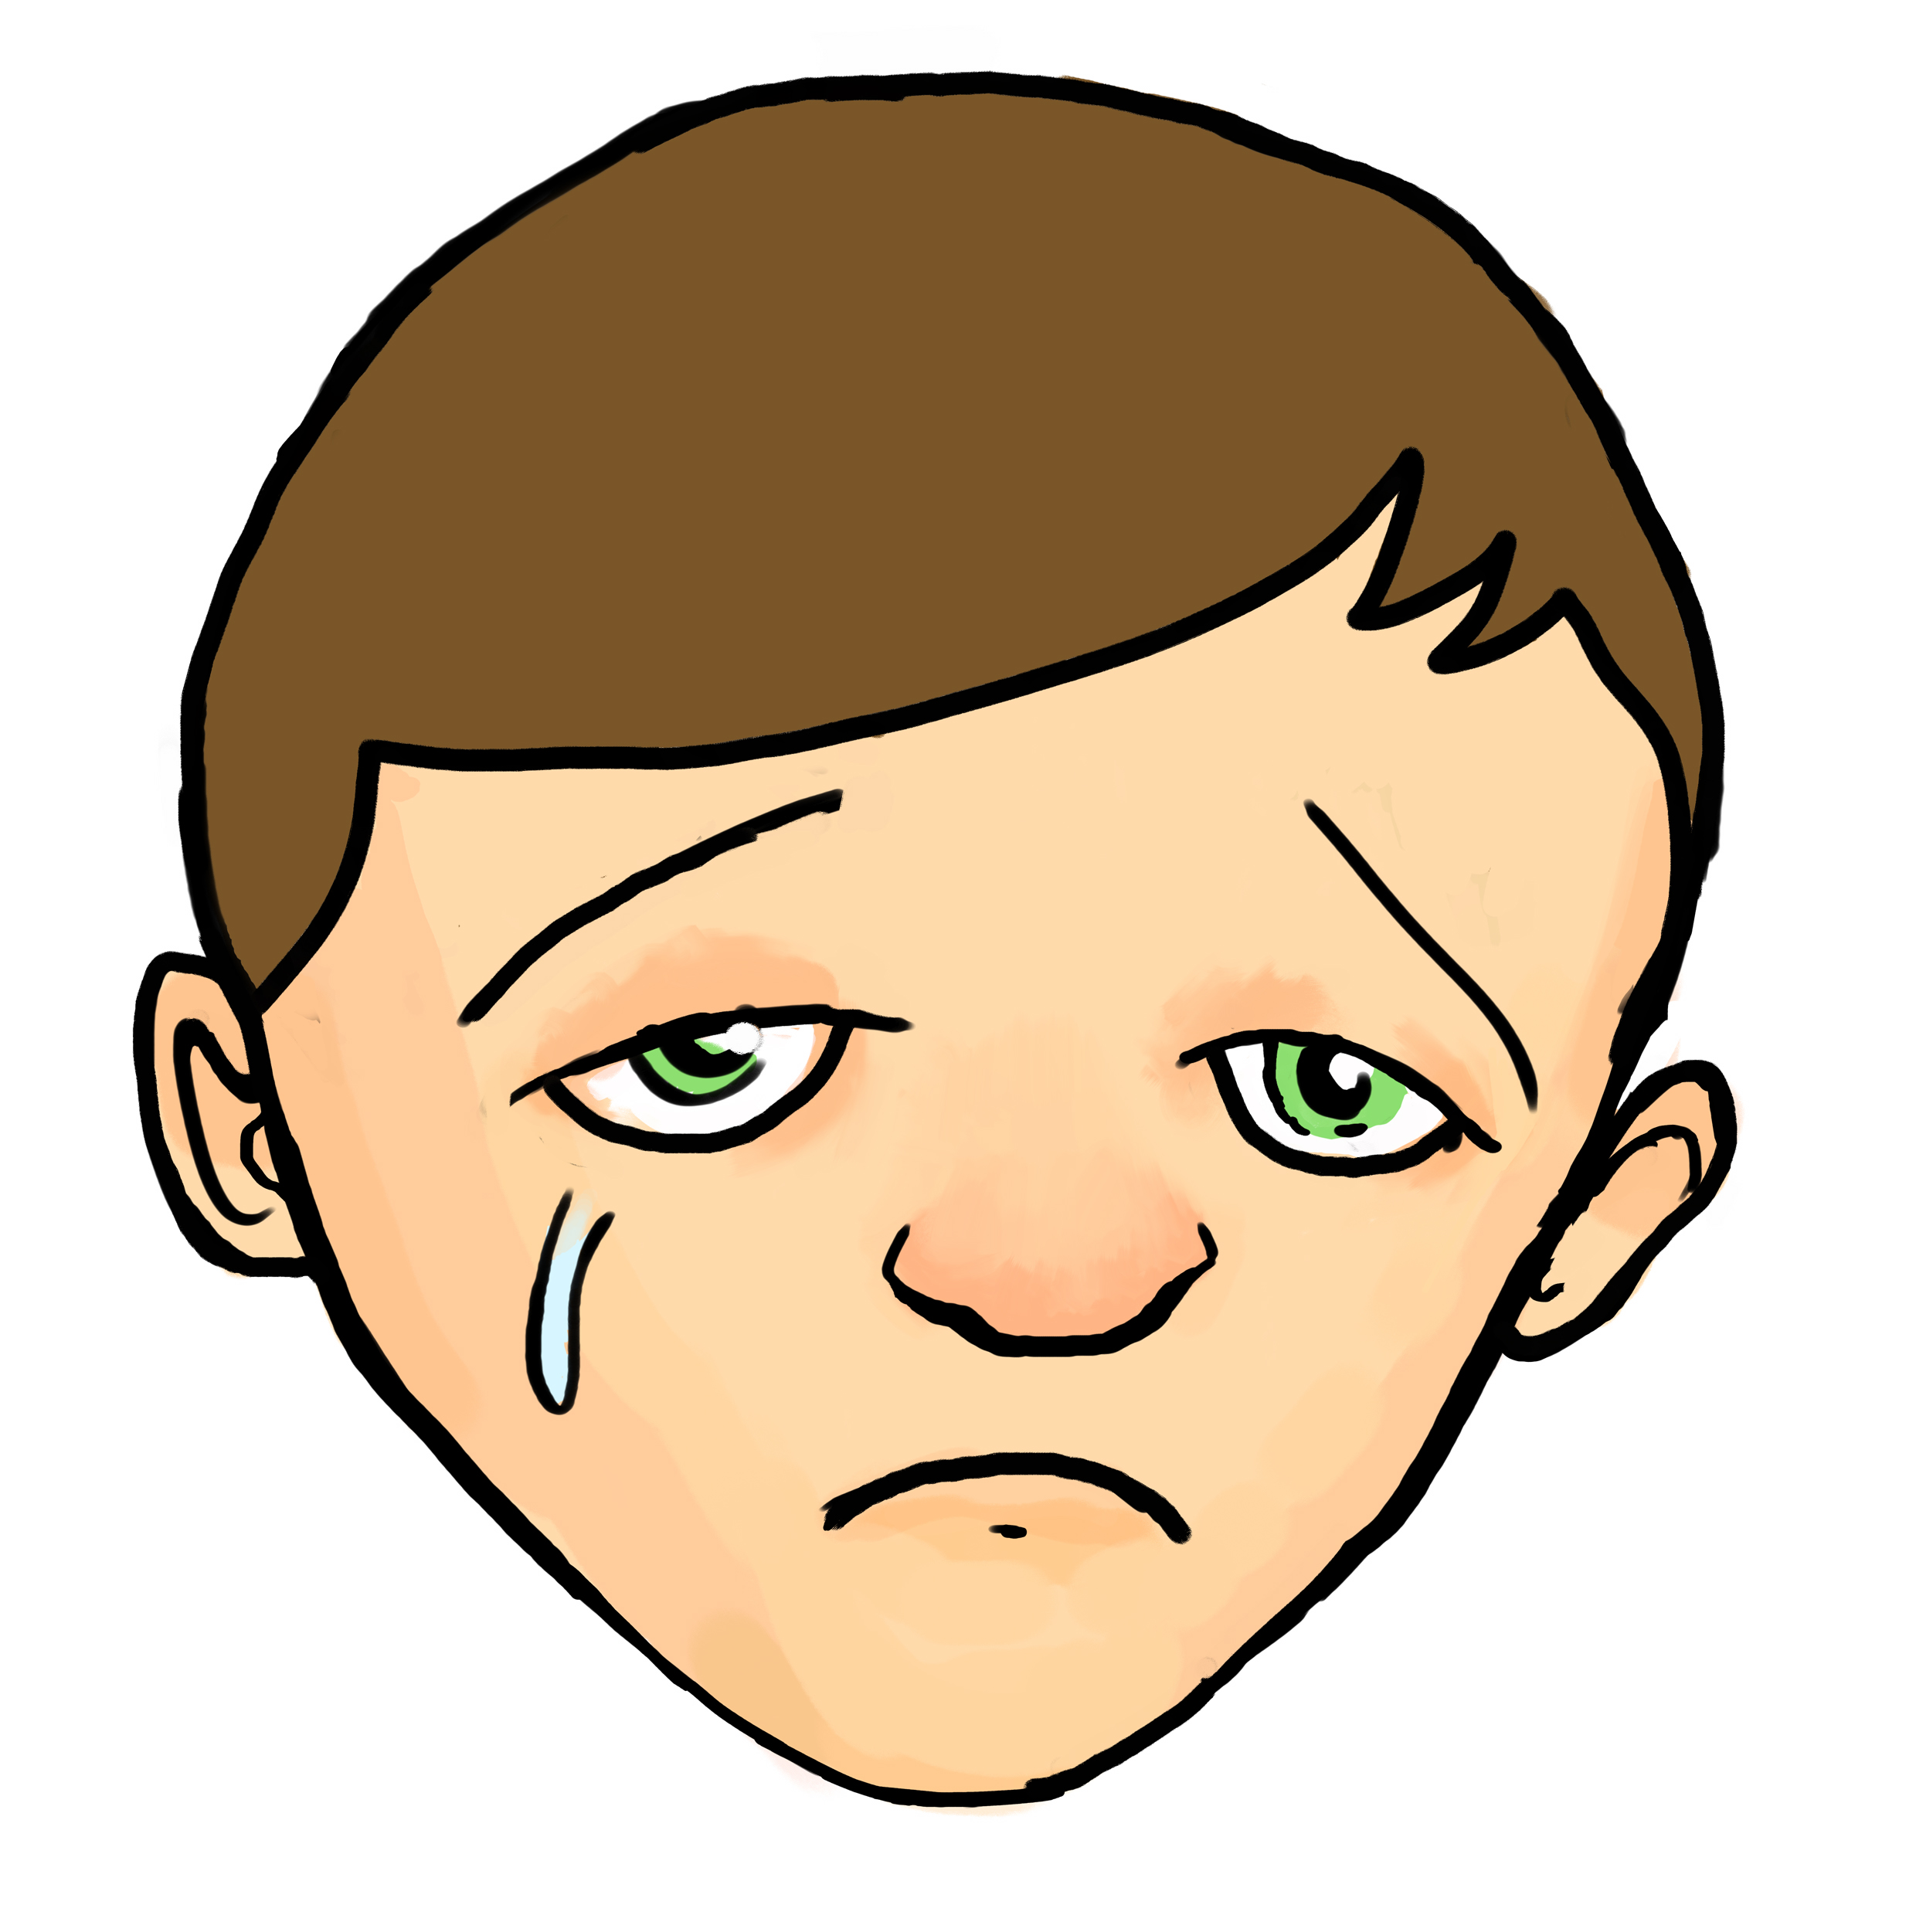 Cartoon Sad Face Clipart - Clipart Suggest